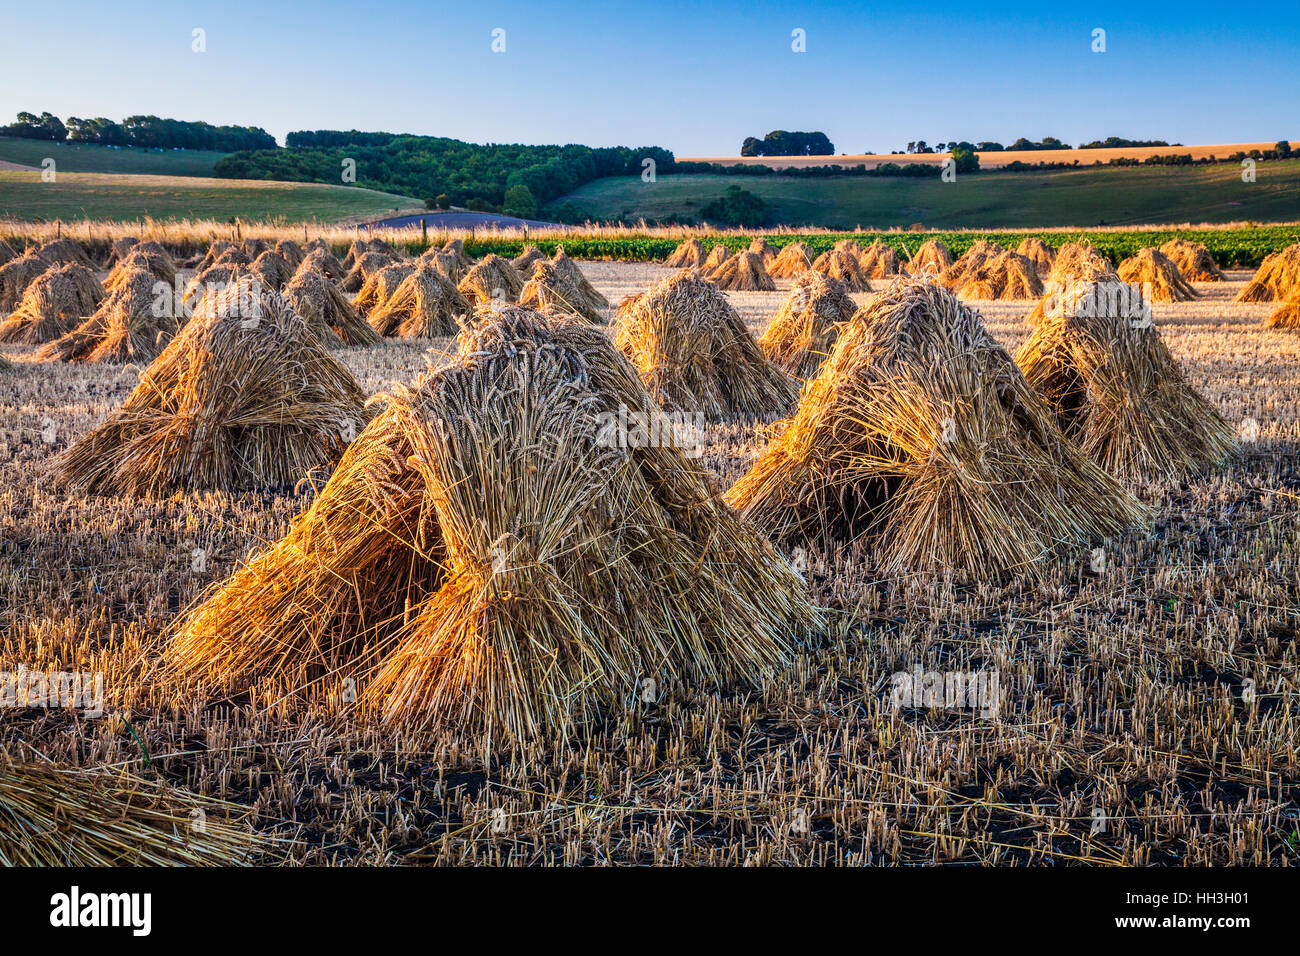 Traditional stooks of wheat in a field in Wiltshire, UK. - Stock Image